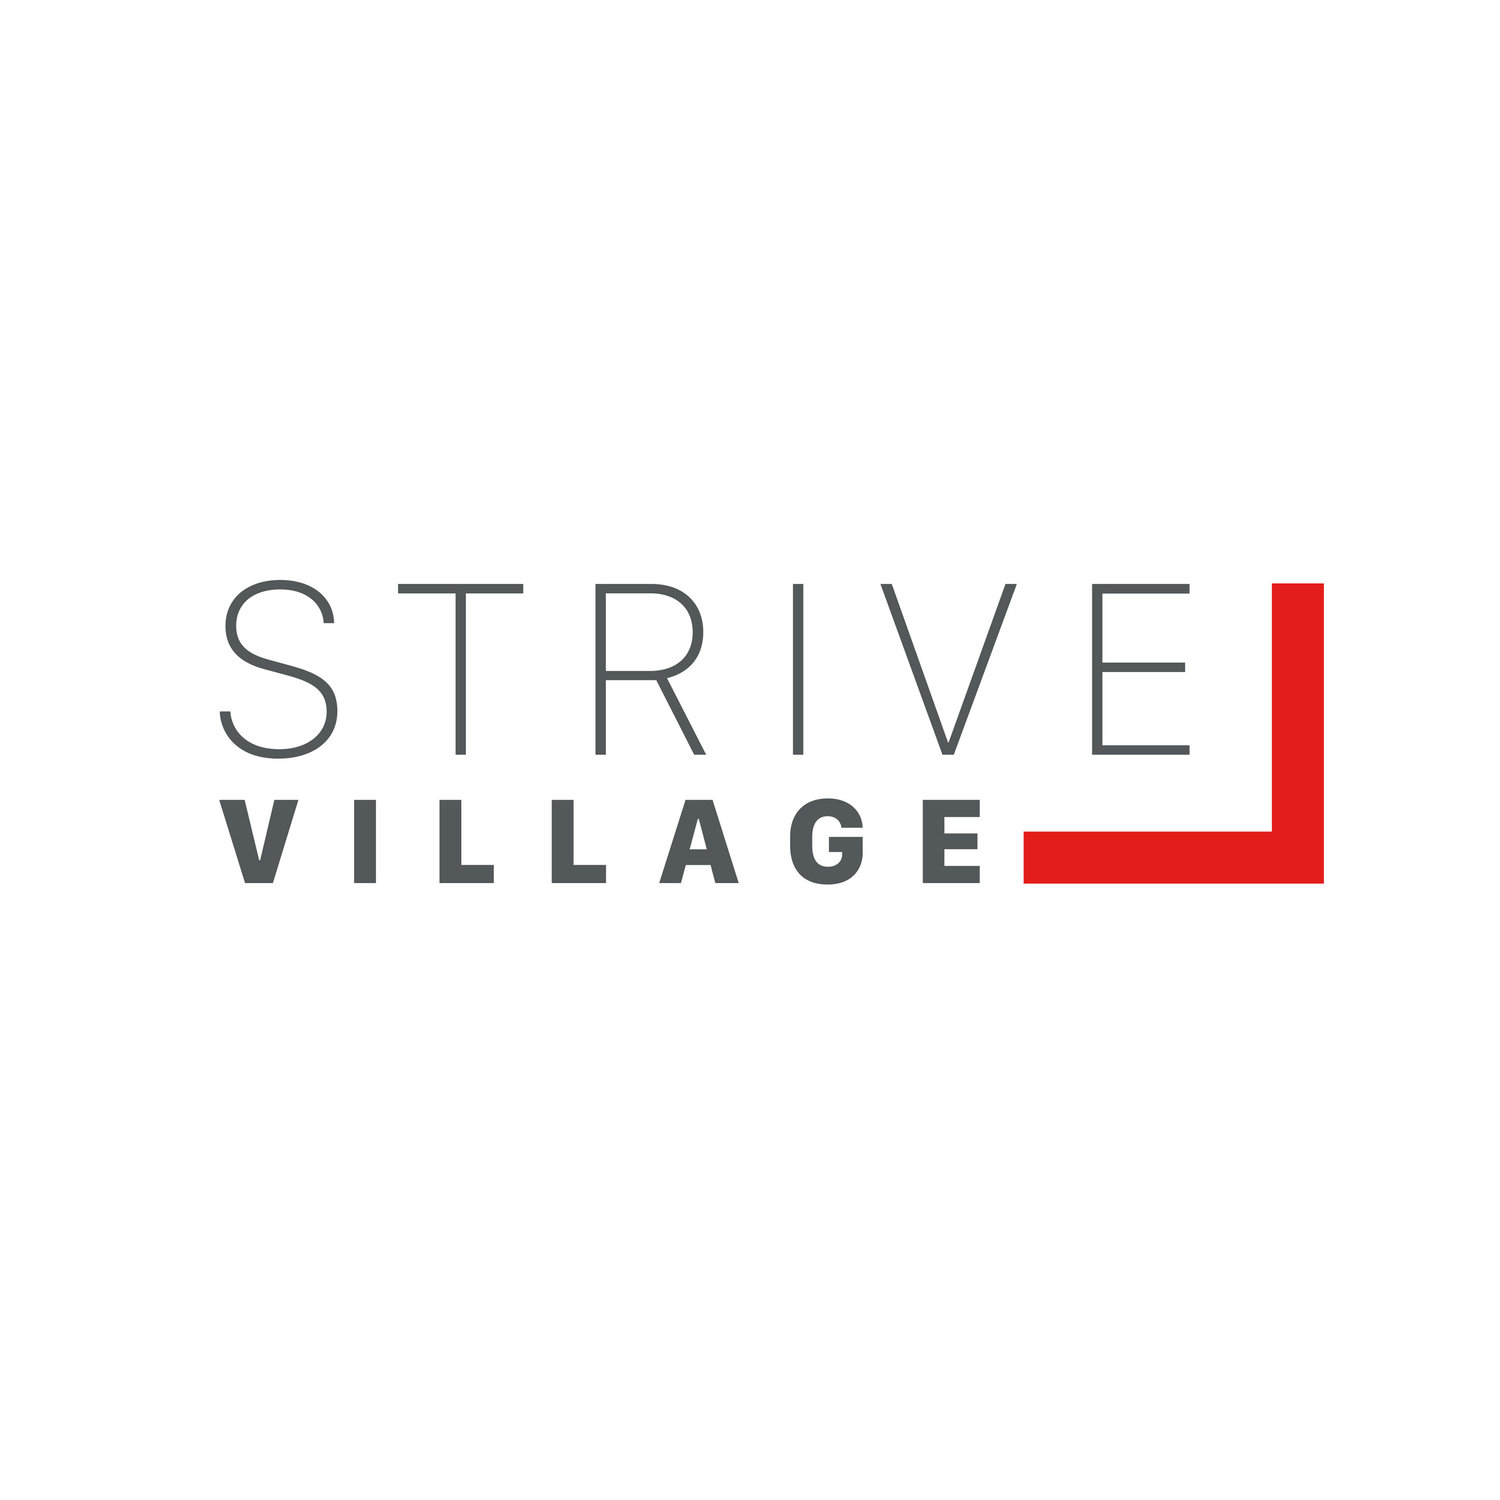 Strive_logo+(square+format).jpg